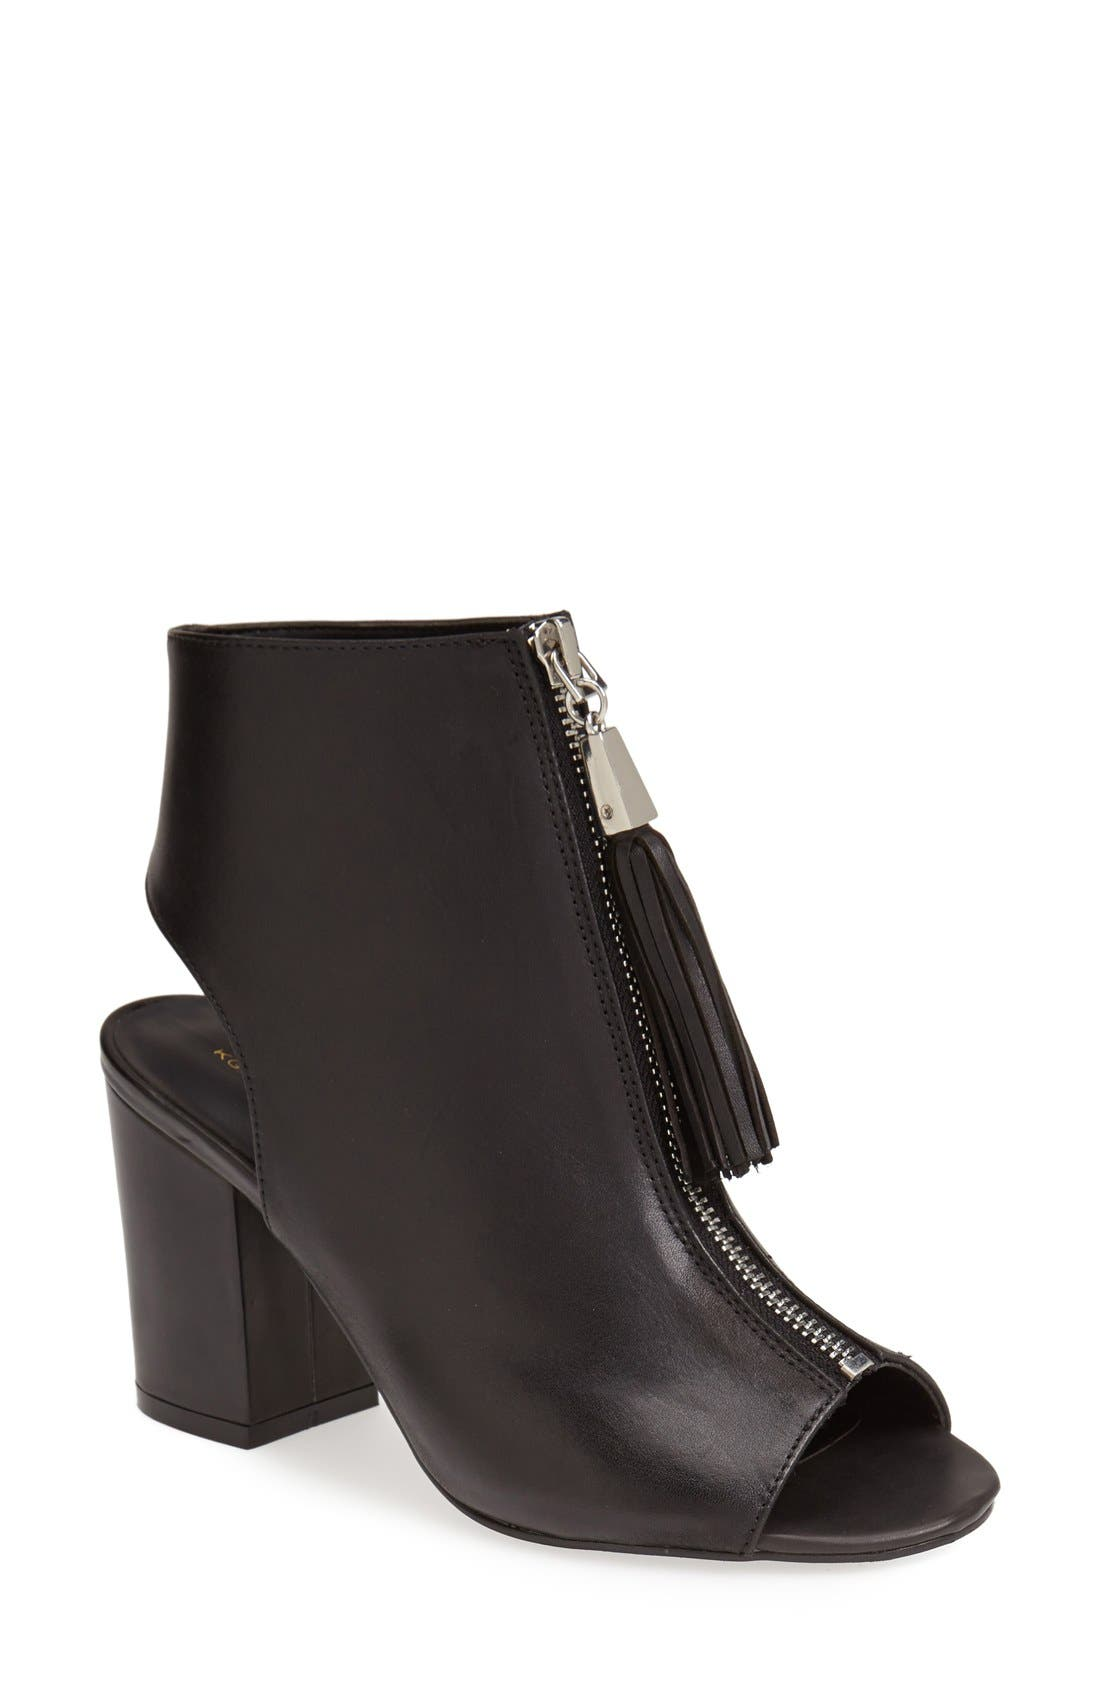 Alternate Image 1 Selected - KG Kurt Geiger 'Seville' Peep Toe Bootie (Women)